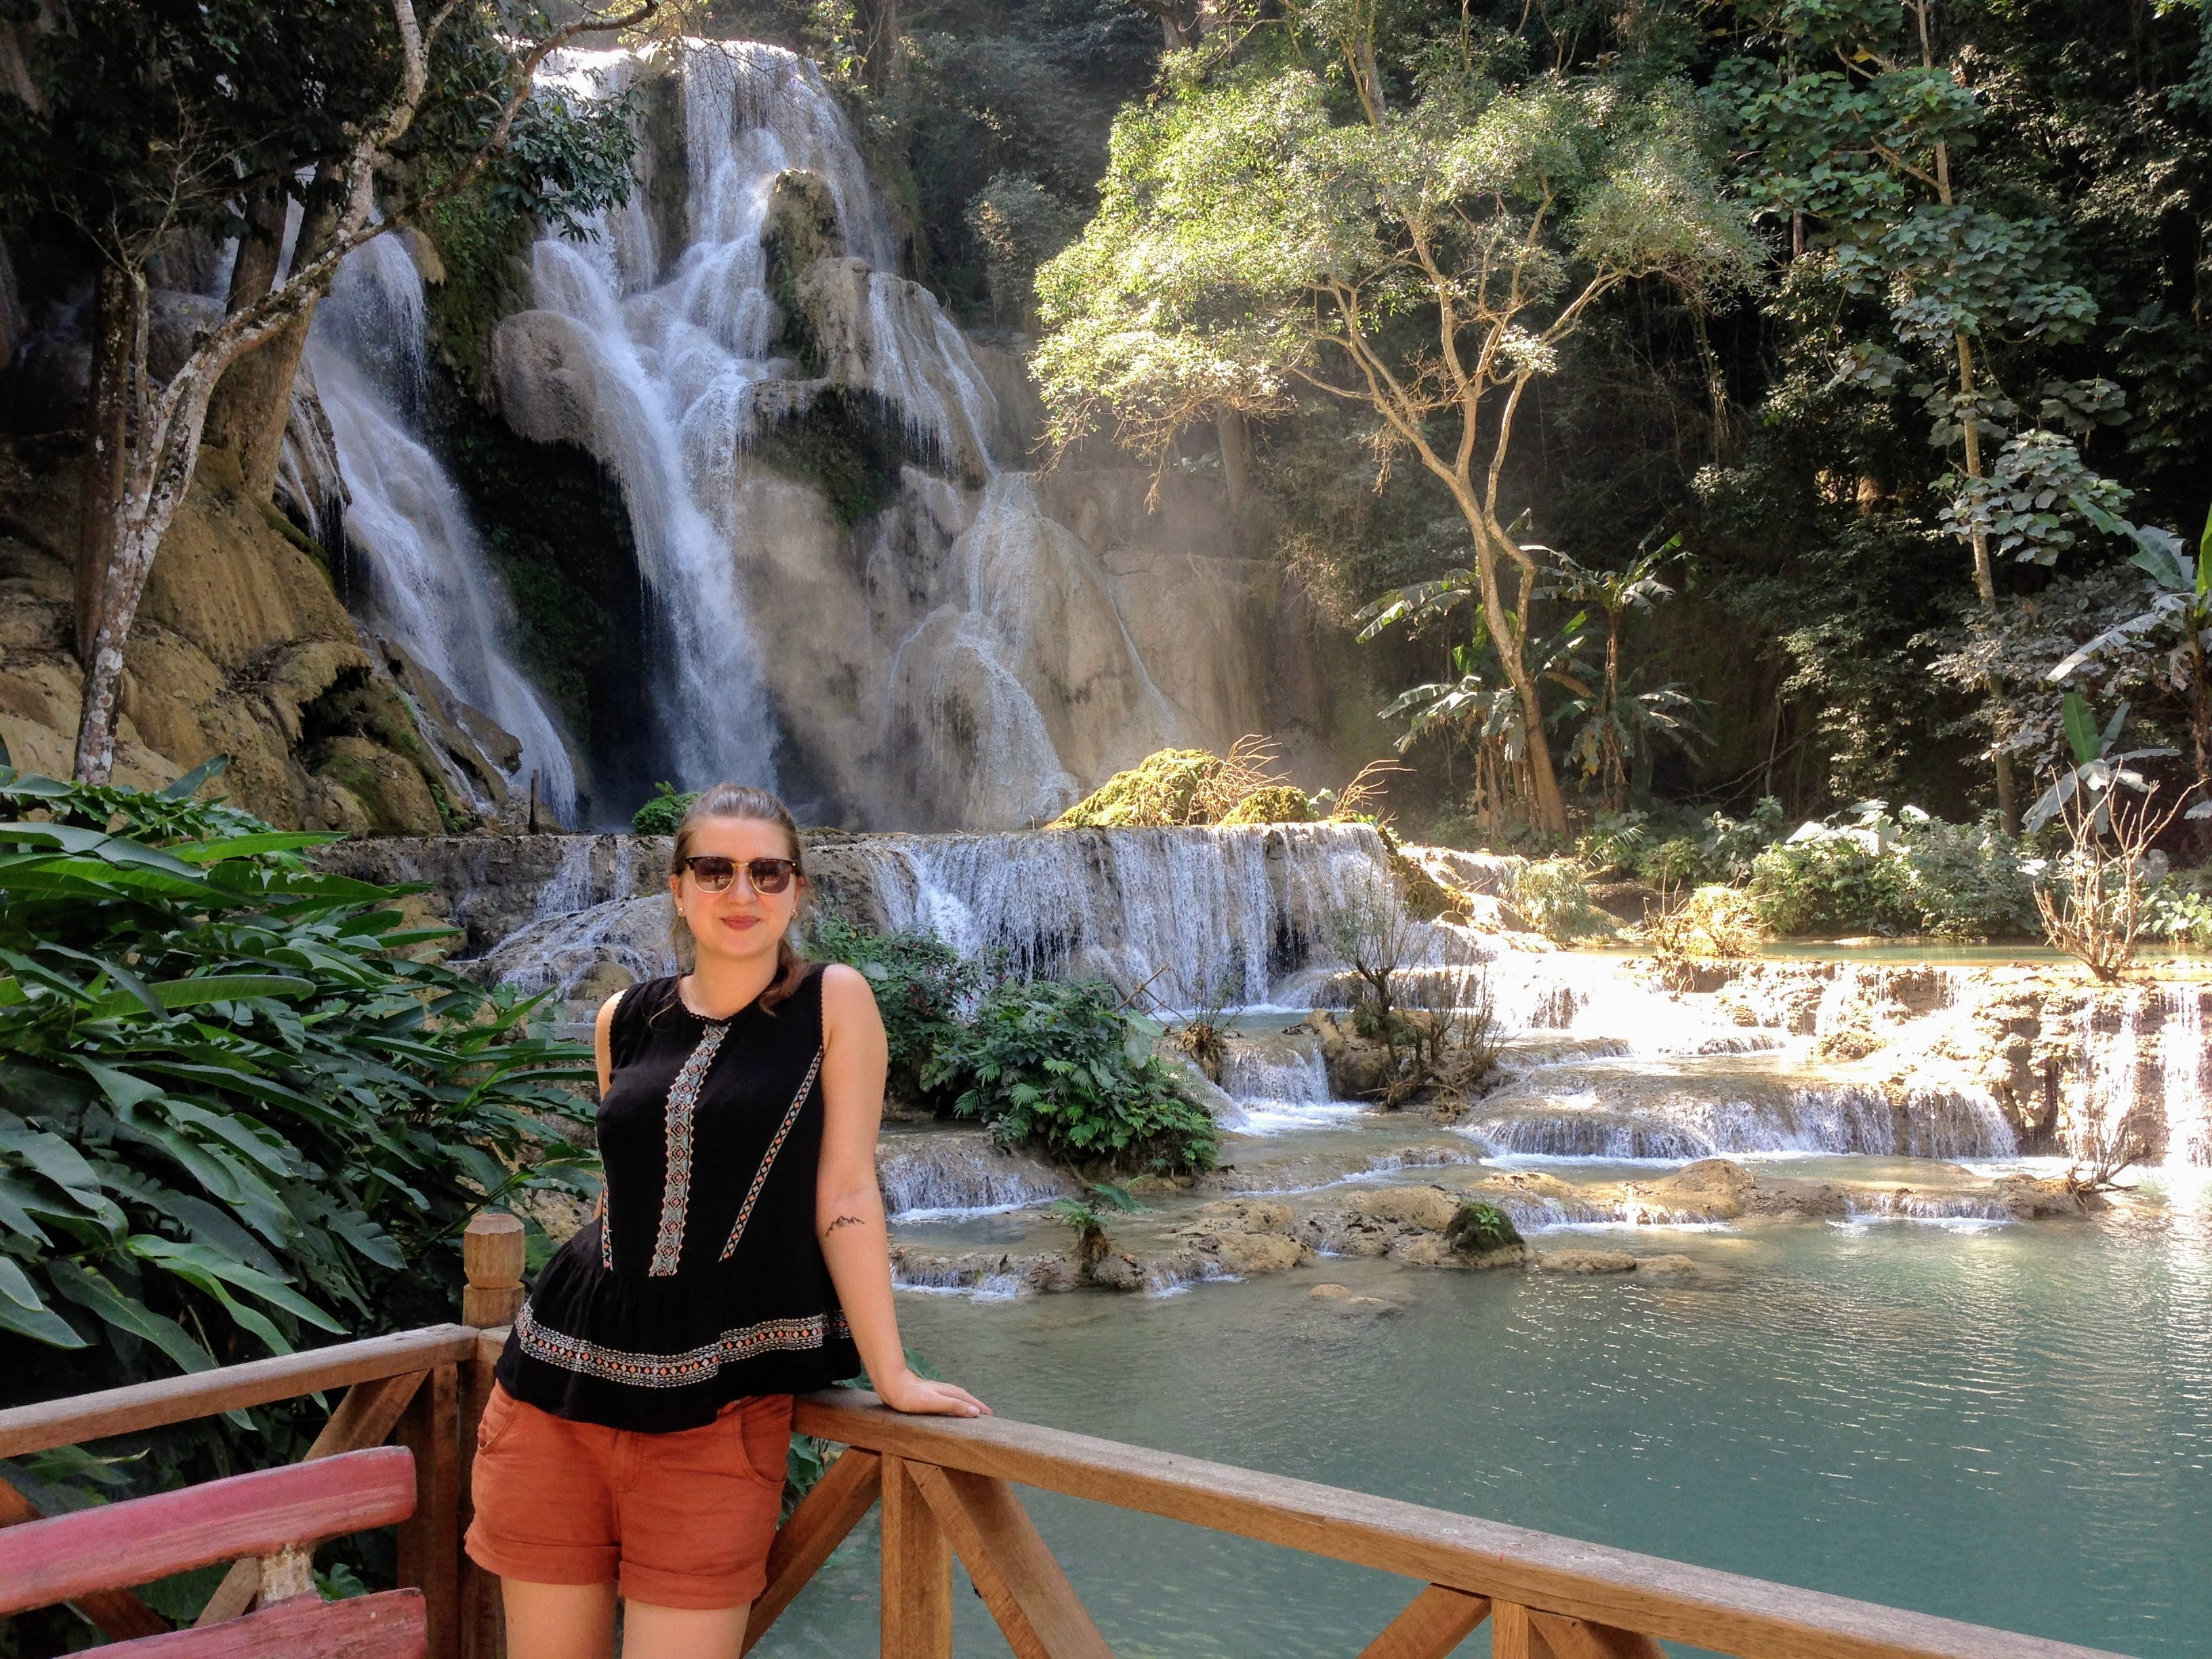 Laos Luang Prabang Kuang Si Waterfalls solo female backpacking